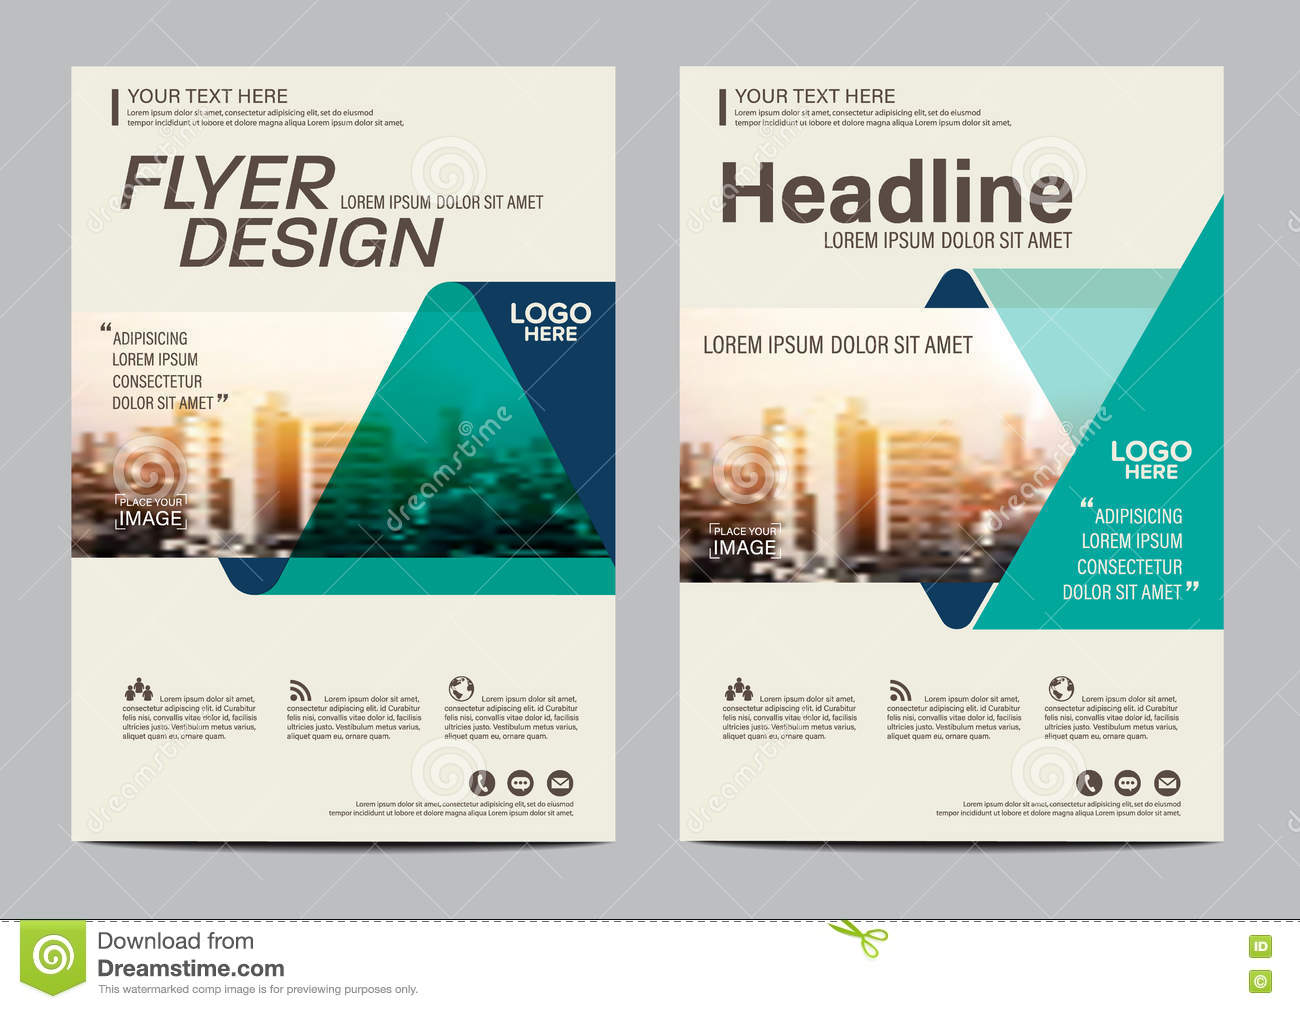 download brochure layout design template annual report flyer leaflet cover presentation modern background illustration